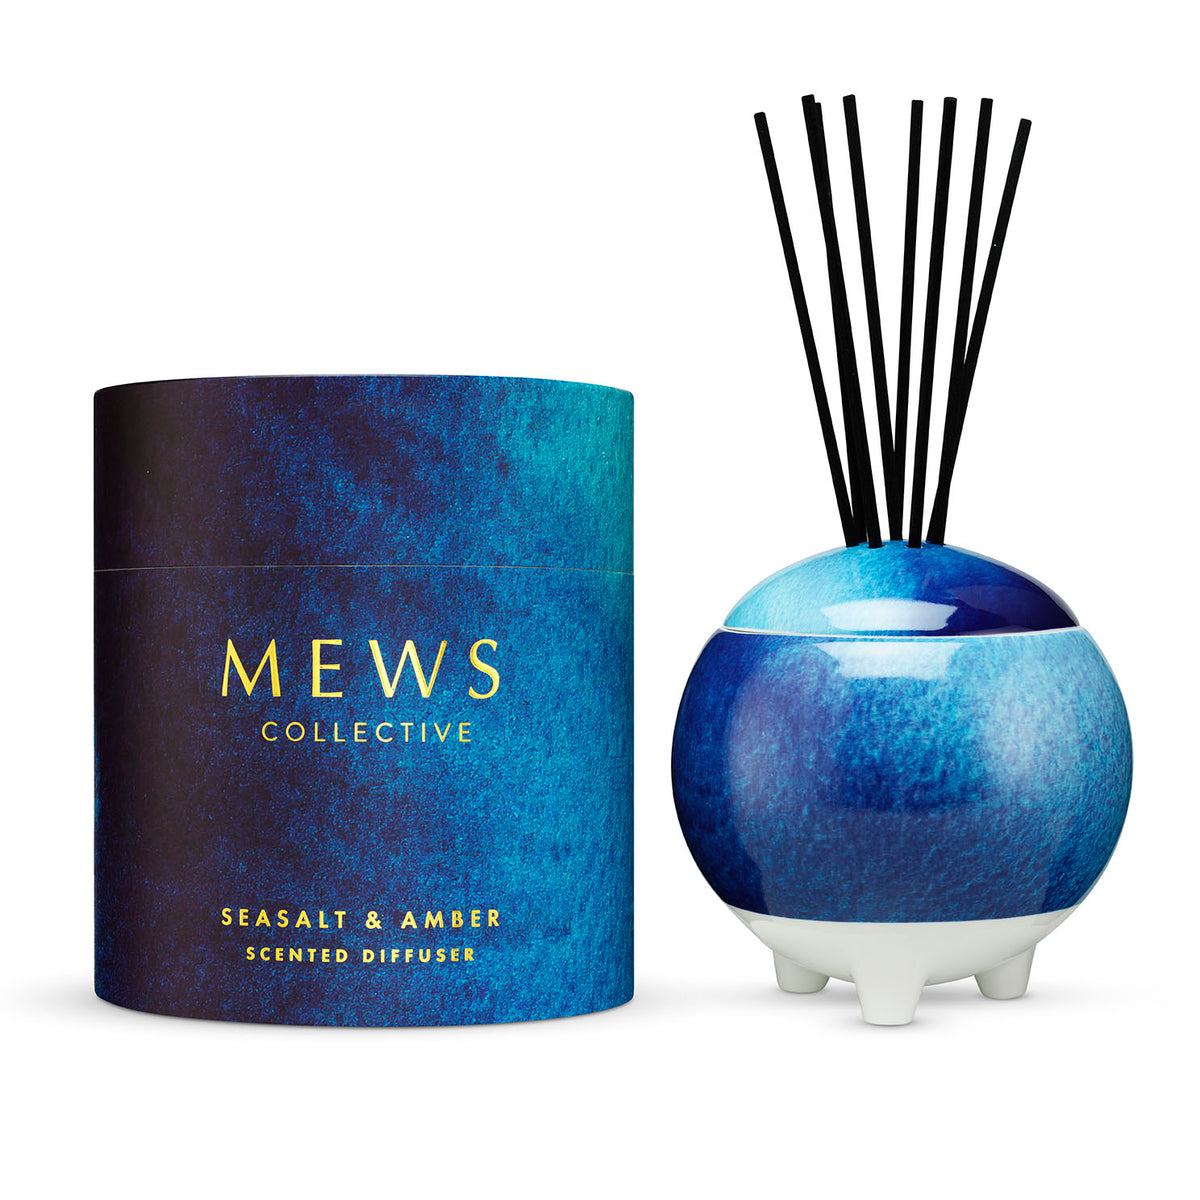 MEWS SEASALT & AMBER – SCENTED DIFFUSER 350ml